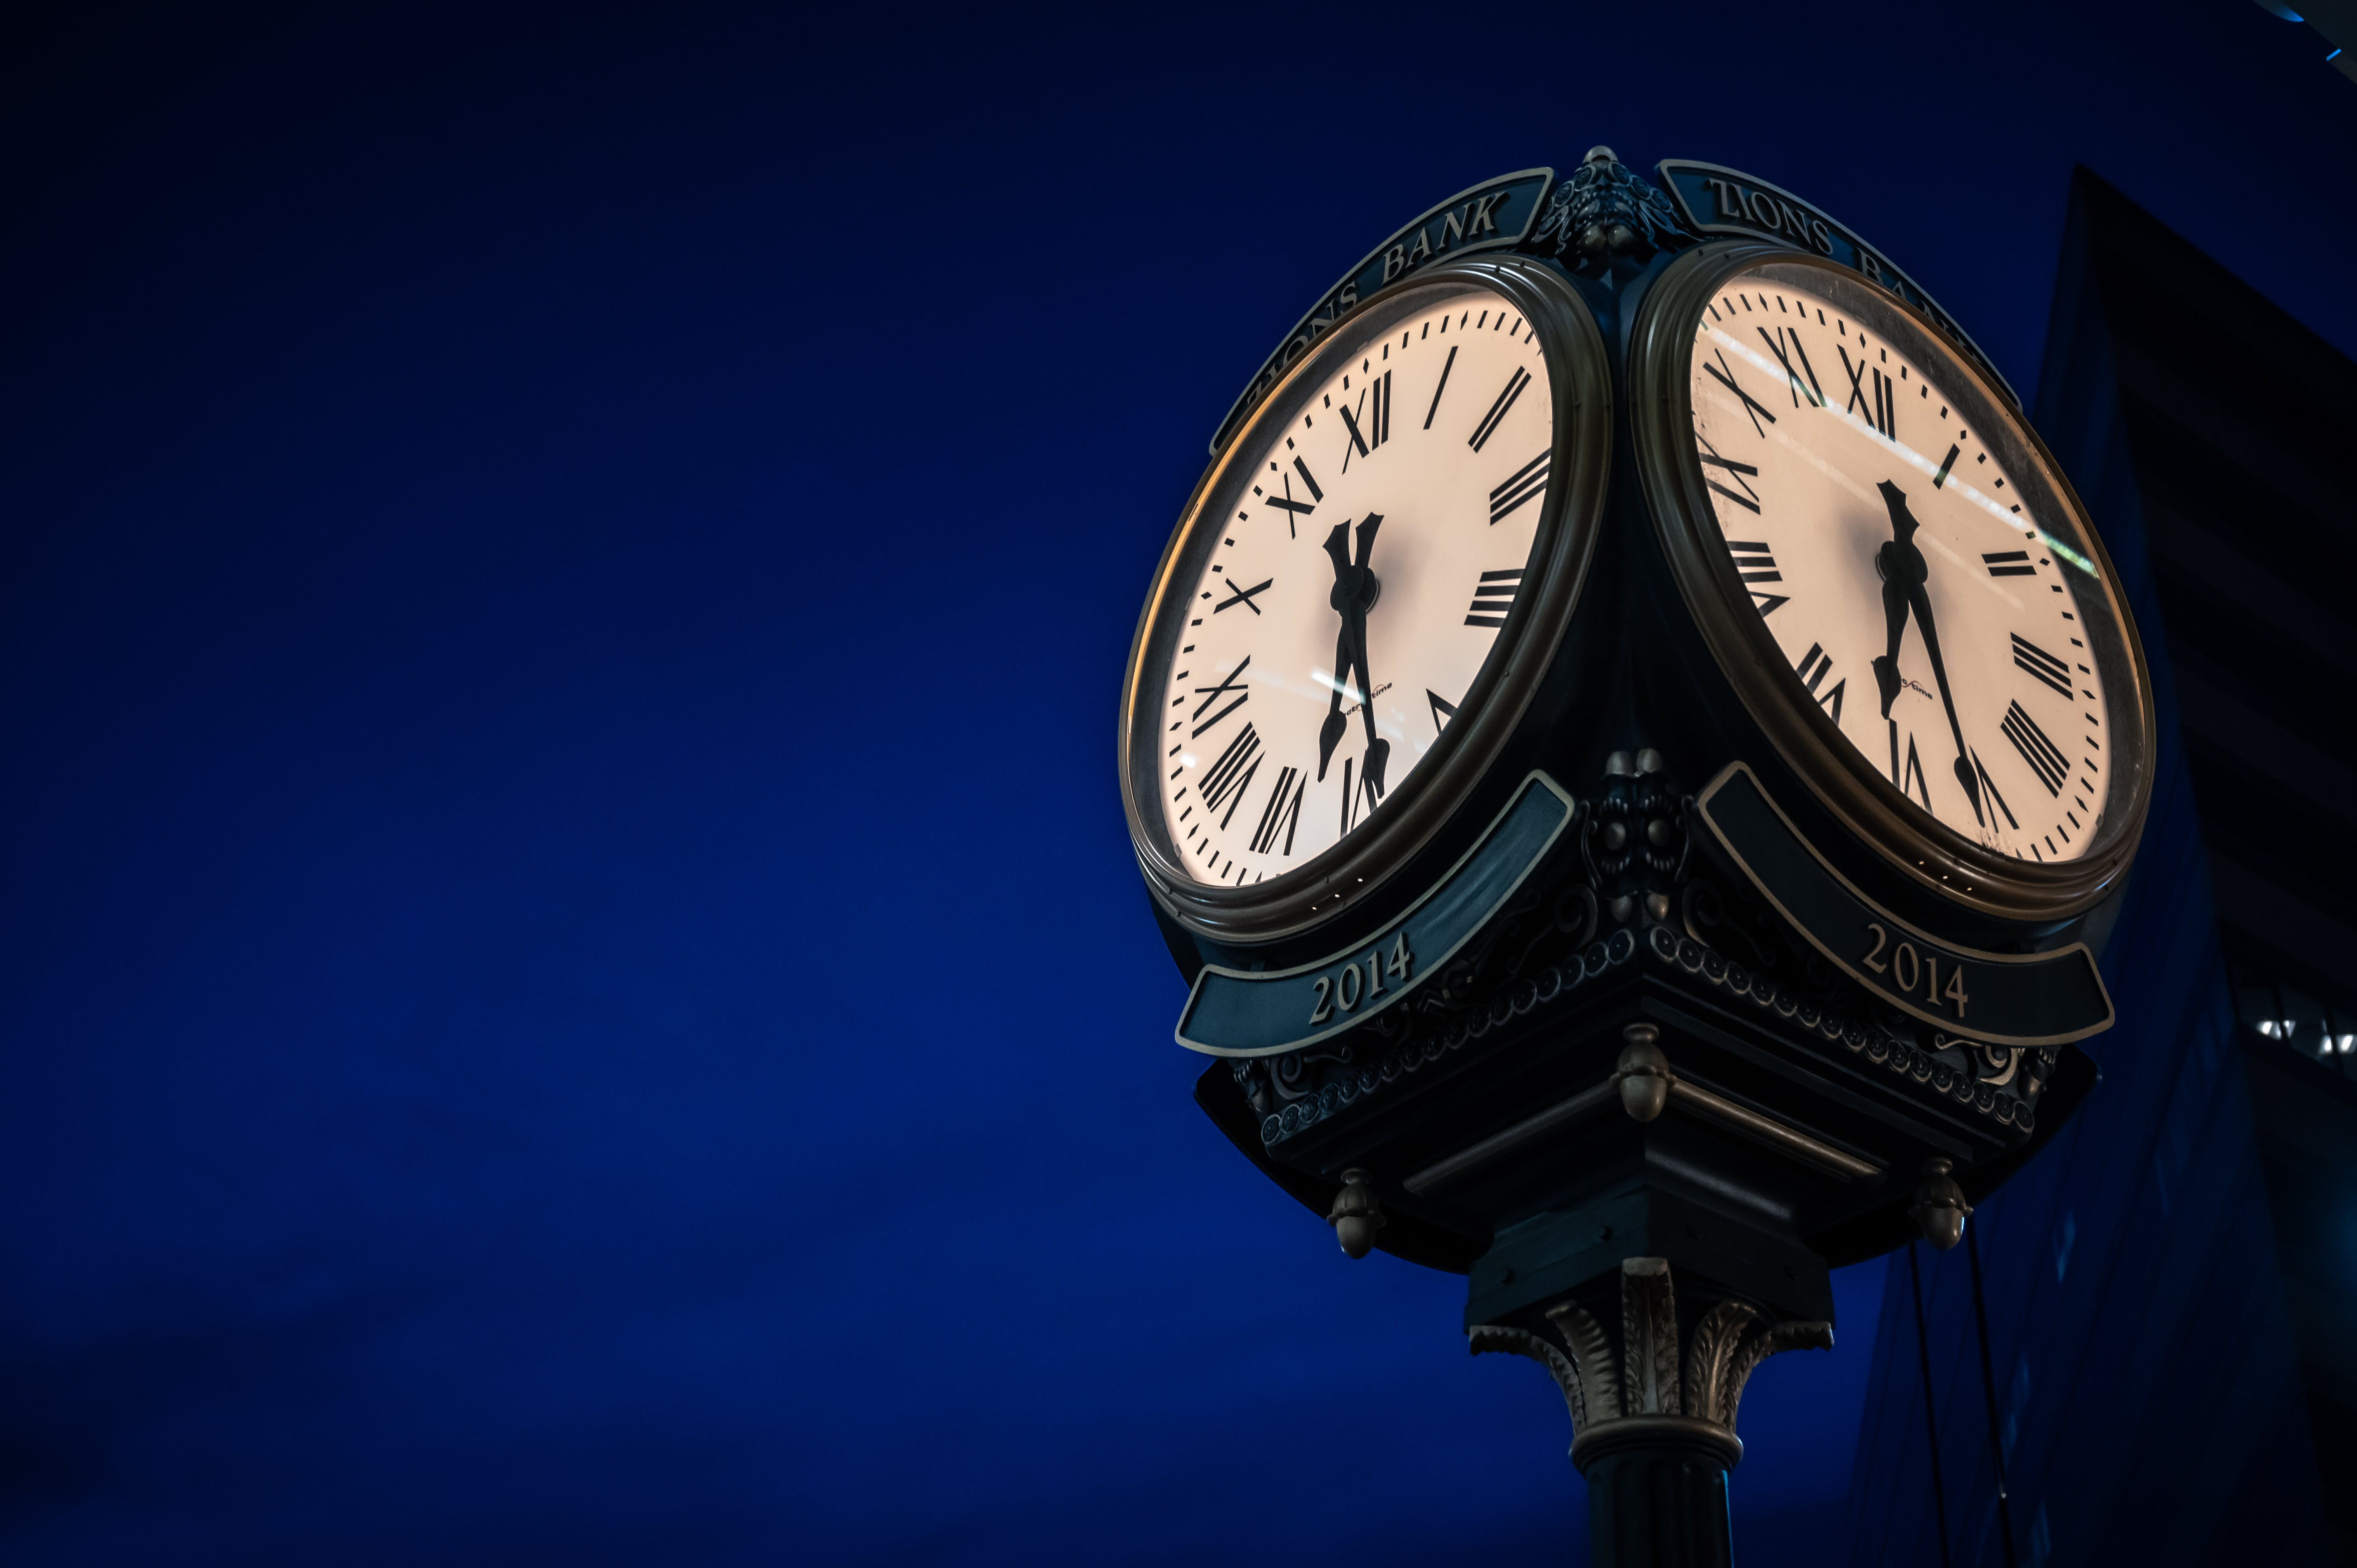 Selective Focus Photography Of Clock At Nighttime